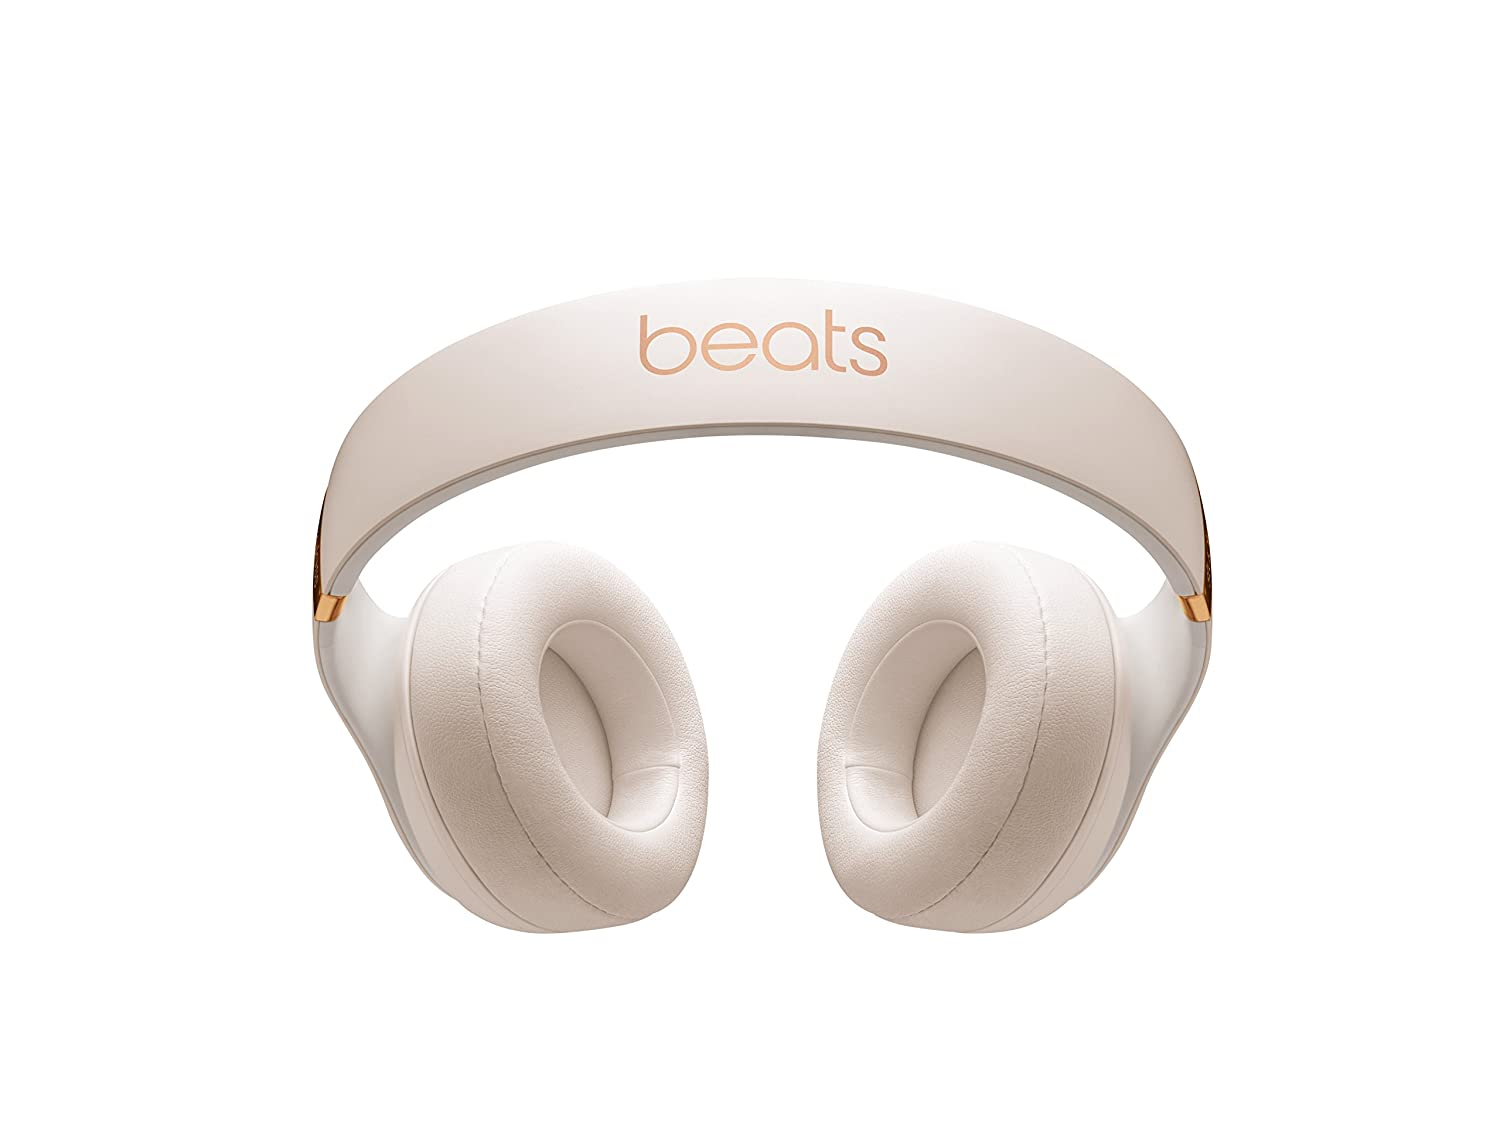 Apple Beats Studio3 Diadema Binaural Alámbrico/Inalámbrico: Amazon.es: Electrónica